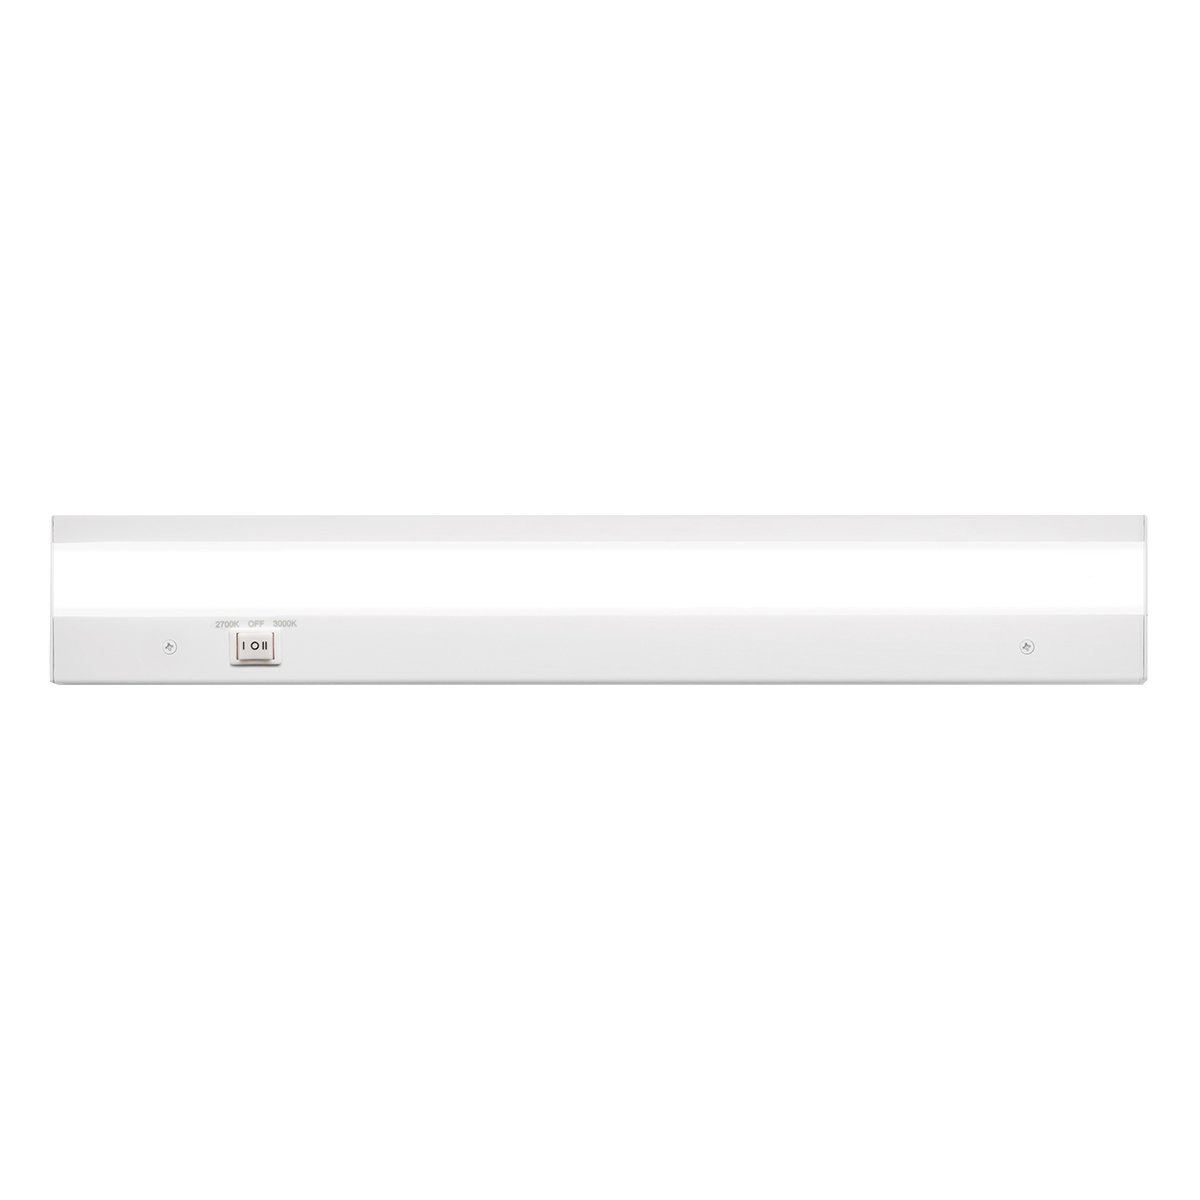 WAC Lighting BA-ACLED18-27/30WT Duo ACLED Dual Color Option Bar in White Finish; 2700K and 3000K, 18 Inches